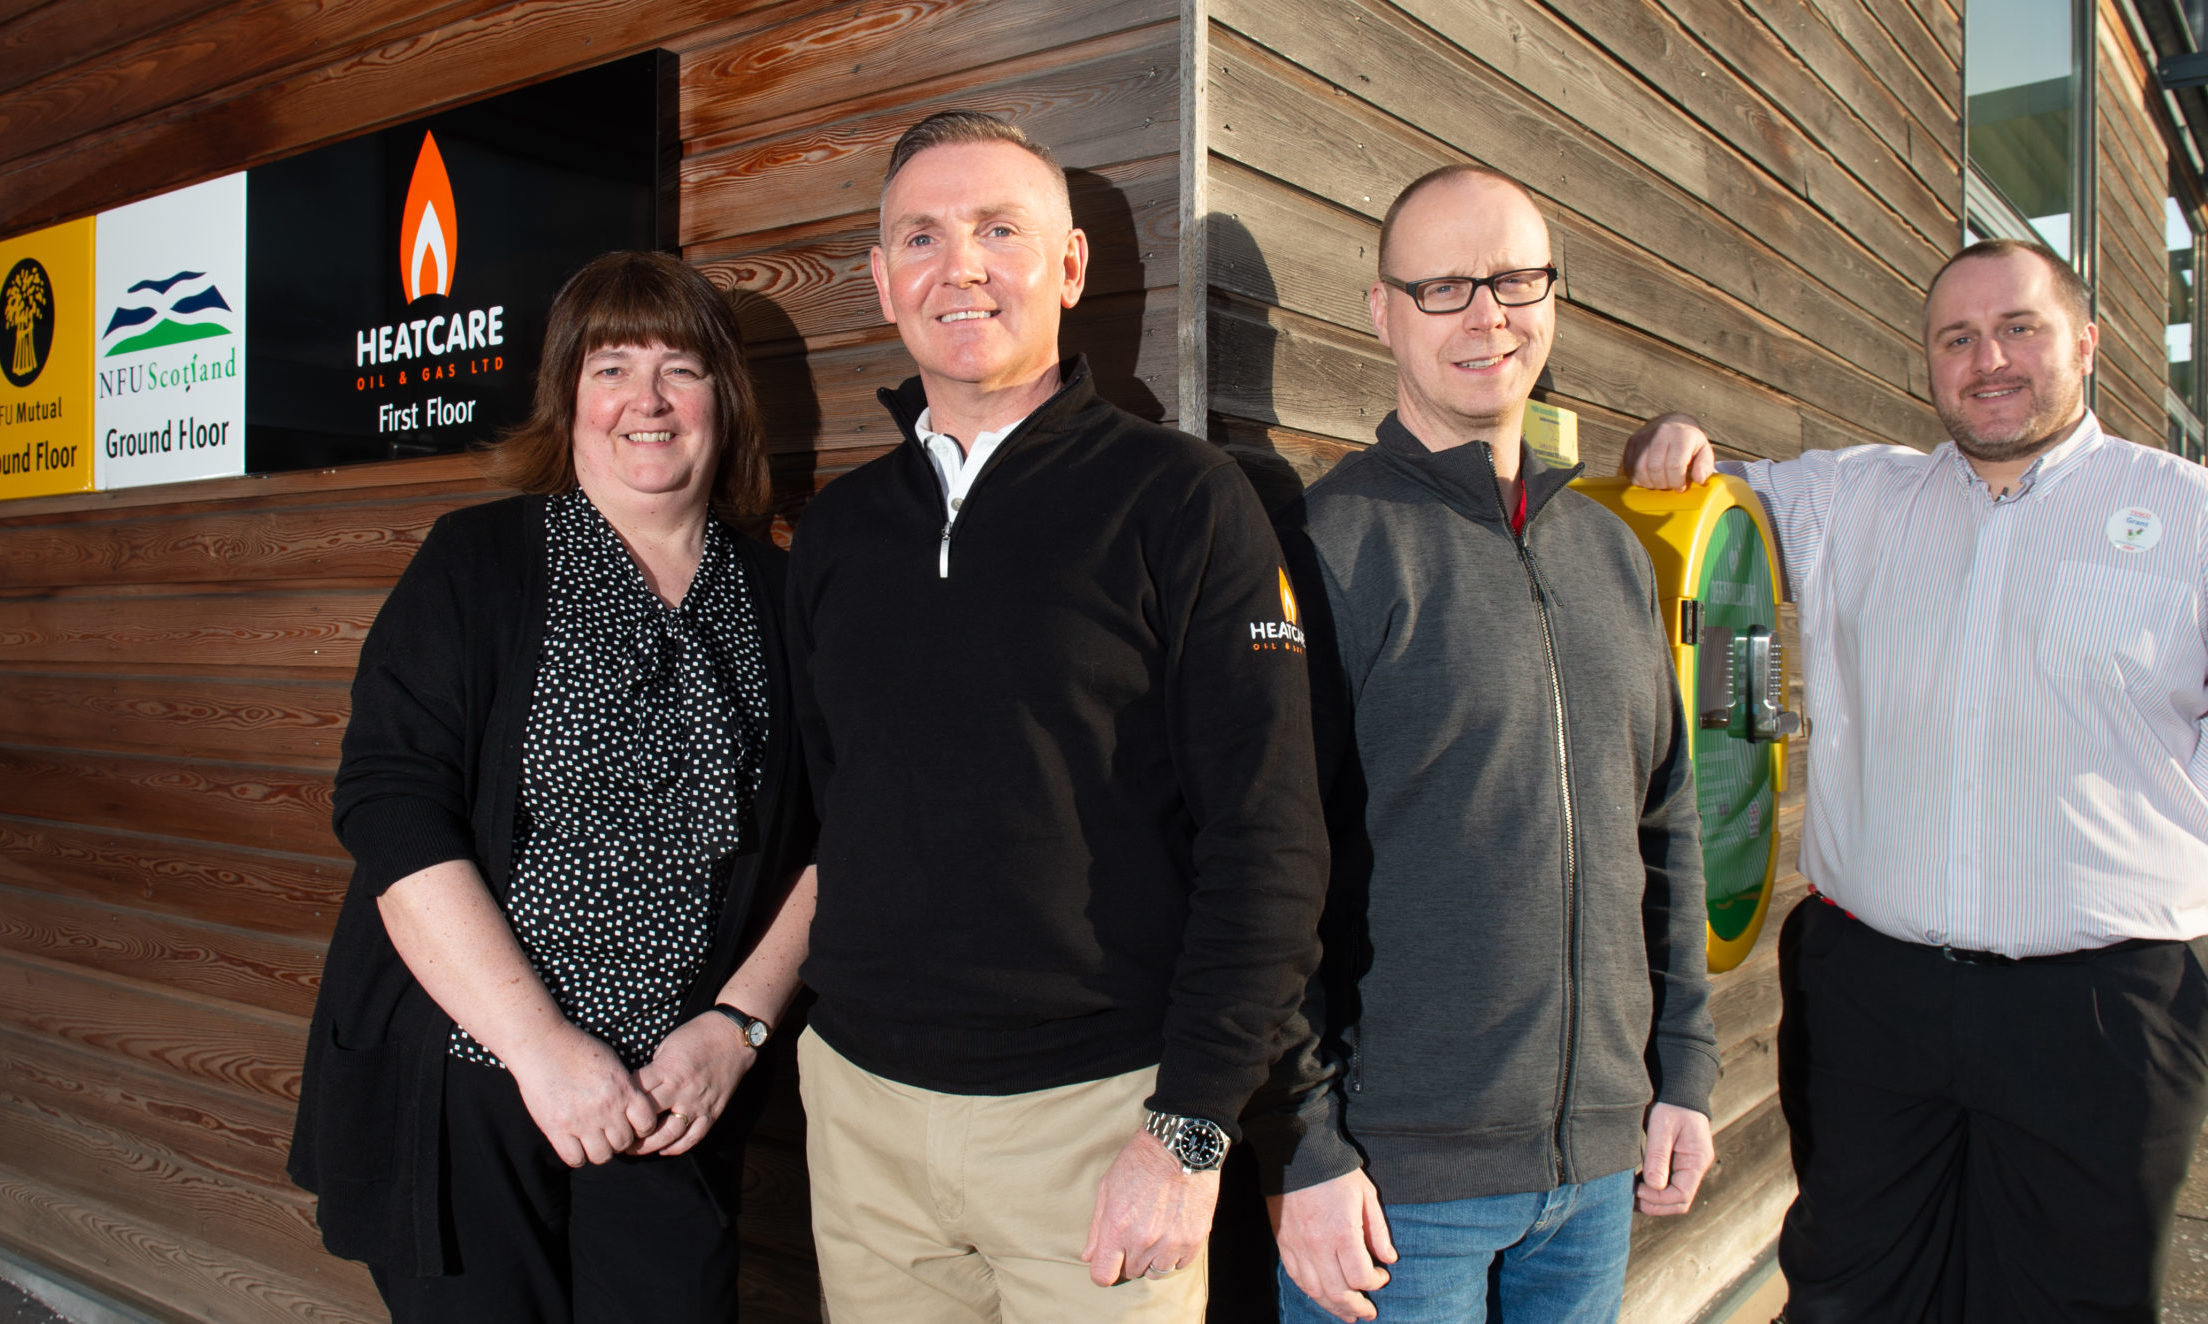 Pictured: Susan Hutcheon from Keith Community Council, Calum McCombie from Heatcare Oil and Gas Ltd, Dave Chapman from Moray Defibs and Grant Henderson from Tesco. Picture by Jason Hedges.